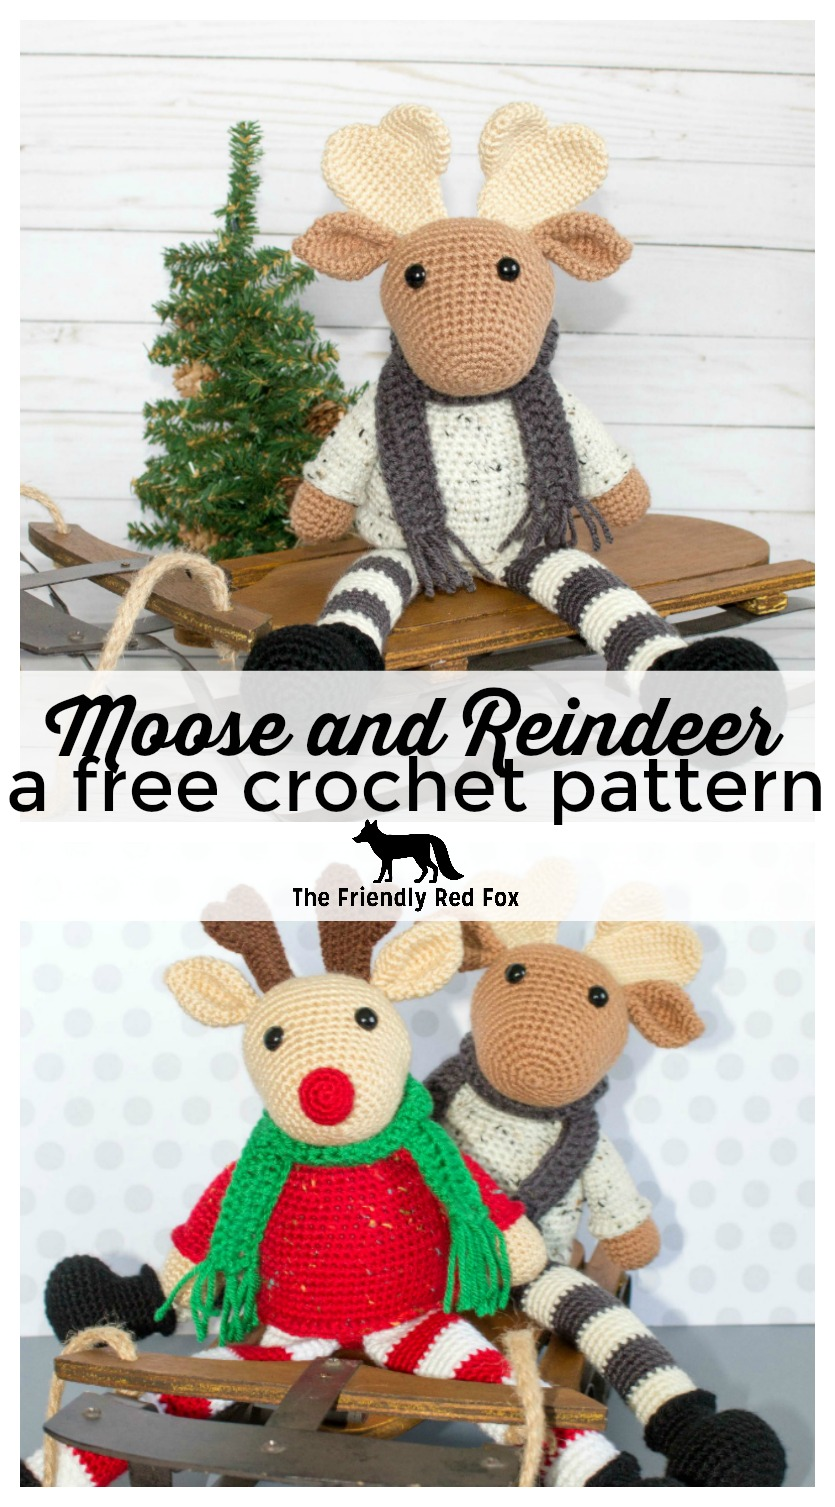 This free crochet moose and crochet reindeer patterns are great to make for Christmas gifts! These amigurumi patterns are super fun and festive, they make great decorations or holiday cuddle friends! #christmas #holidaycrochet #christmascraft #crochet #amigurumi #crochetmoose #crochetreindeer